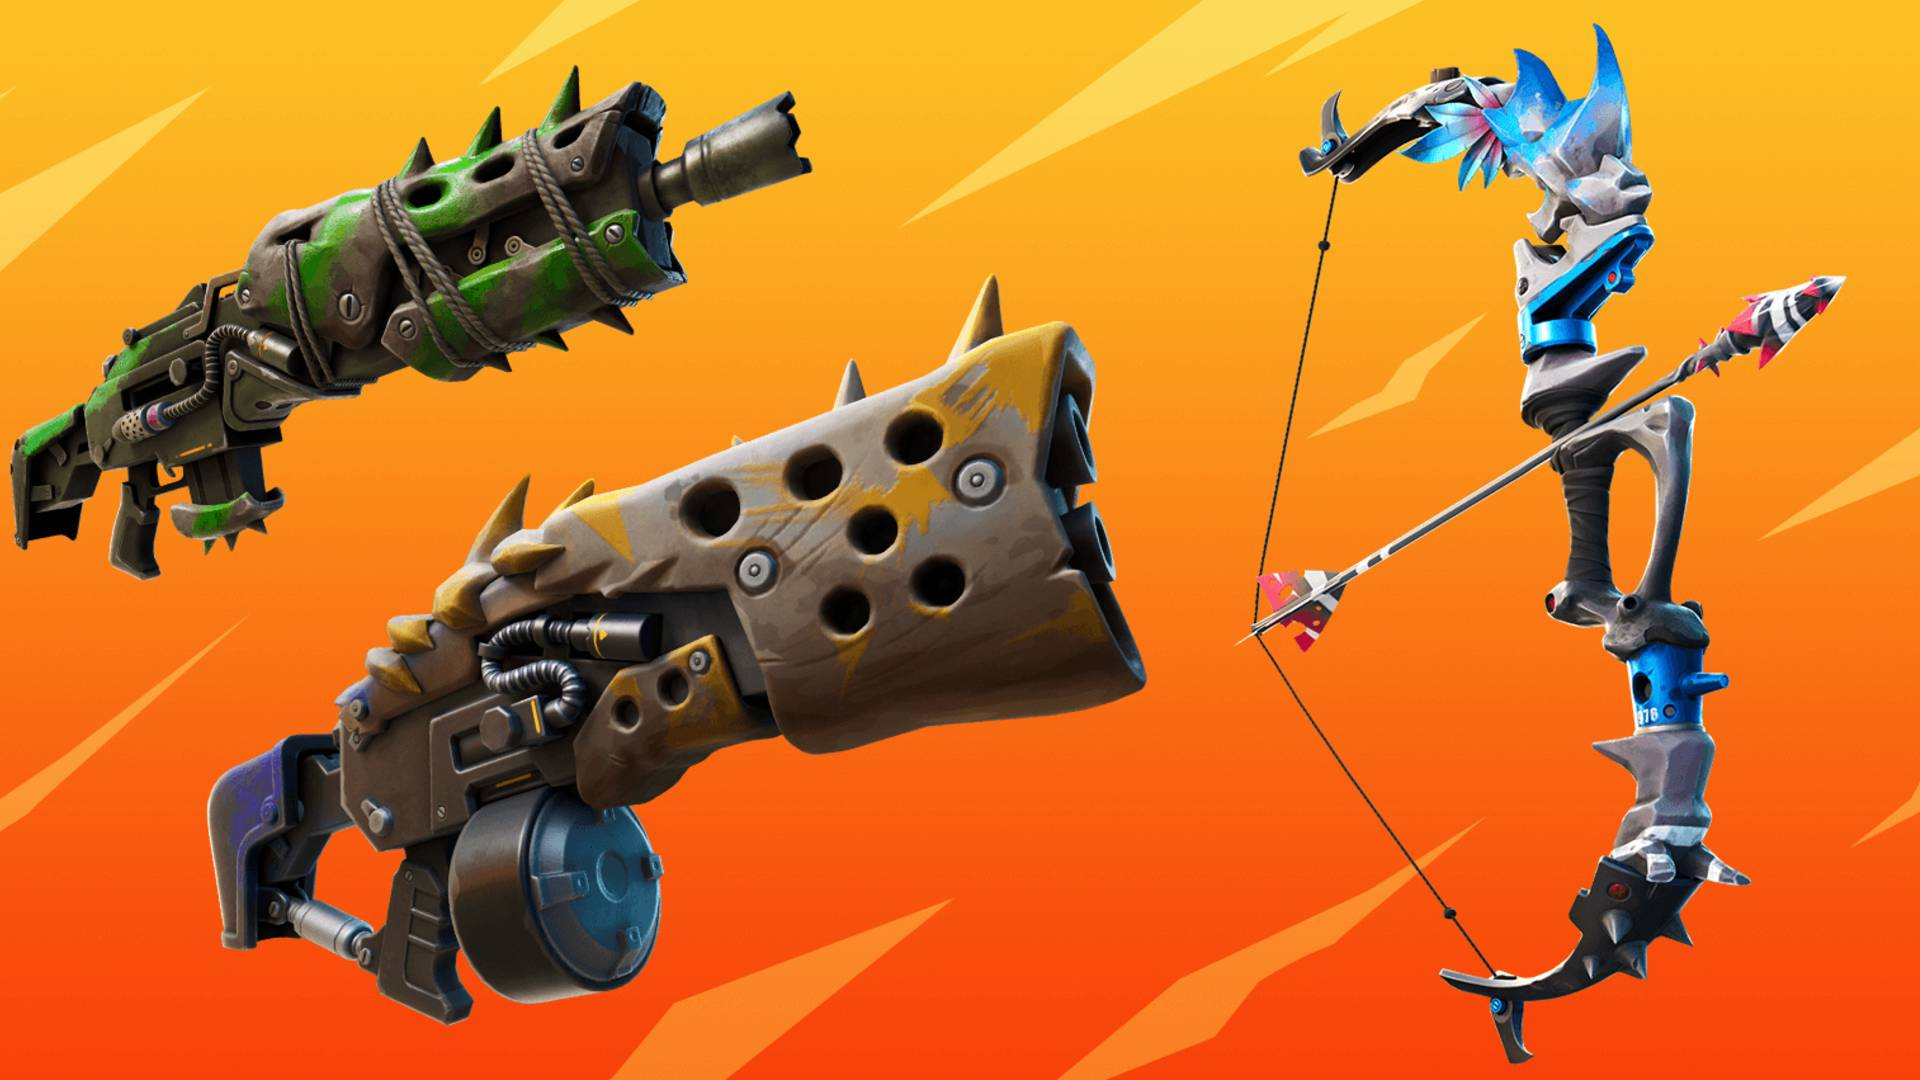 Fortnite new guns – here are all the new weapons in Fortnite Season 6